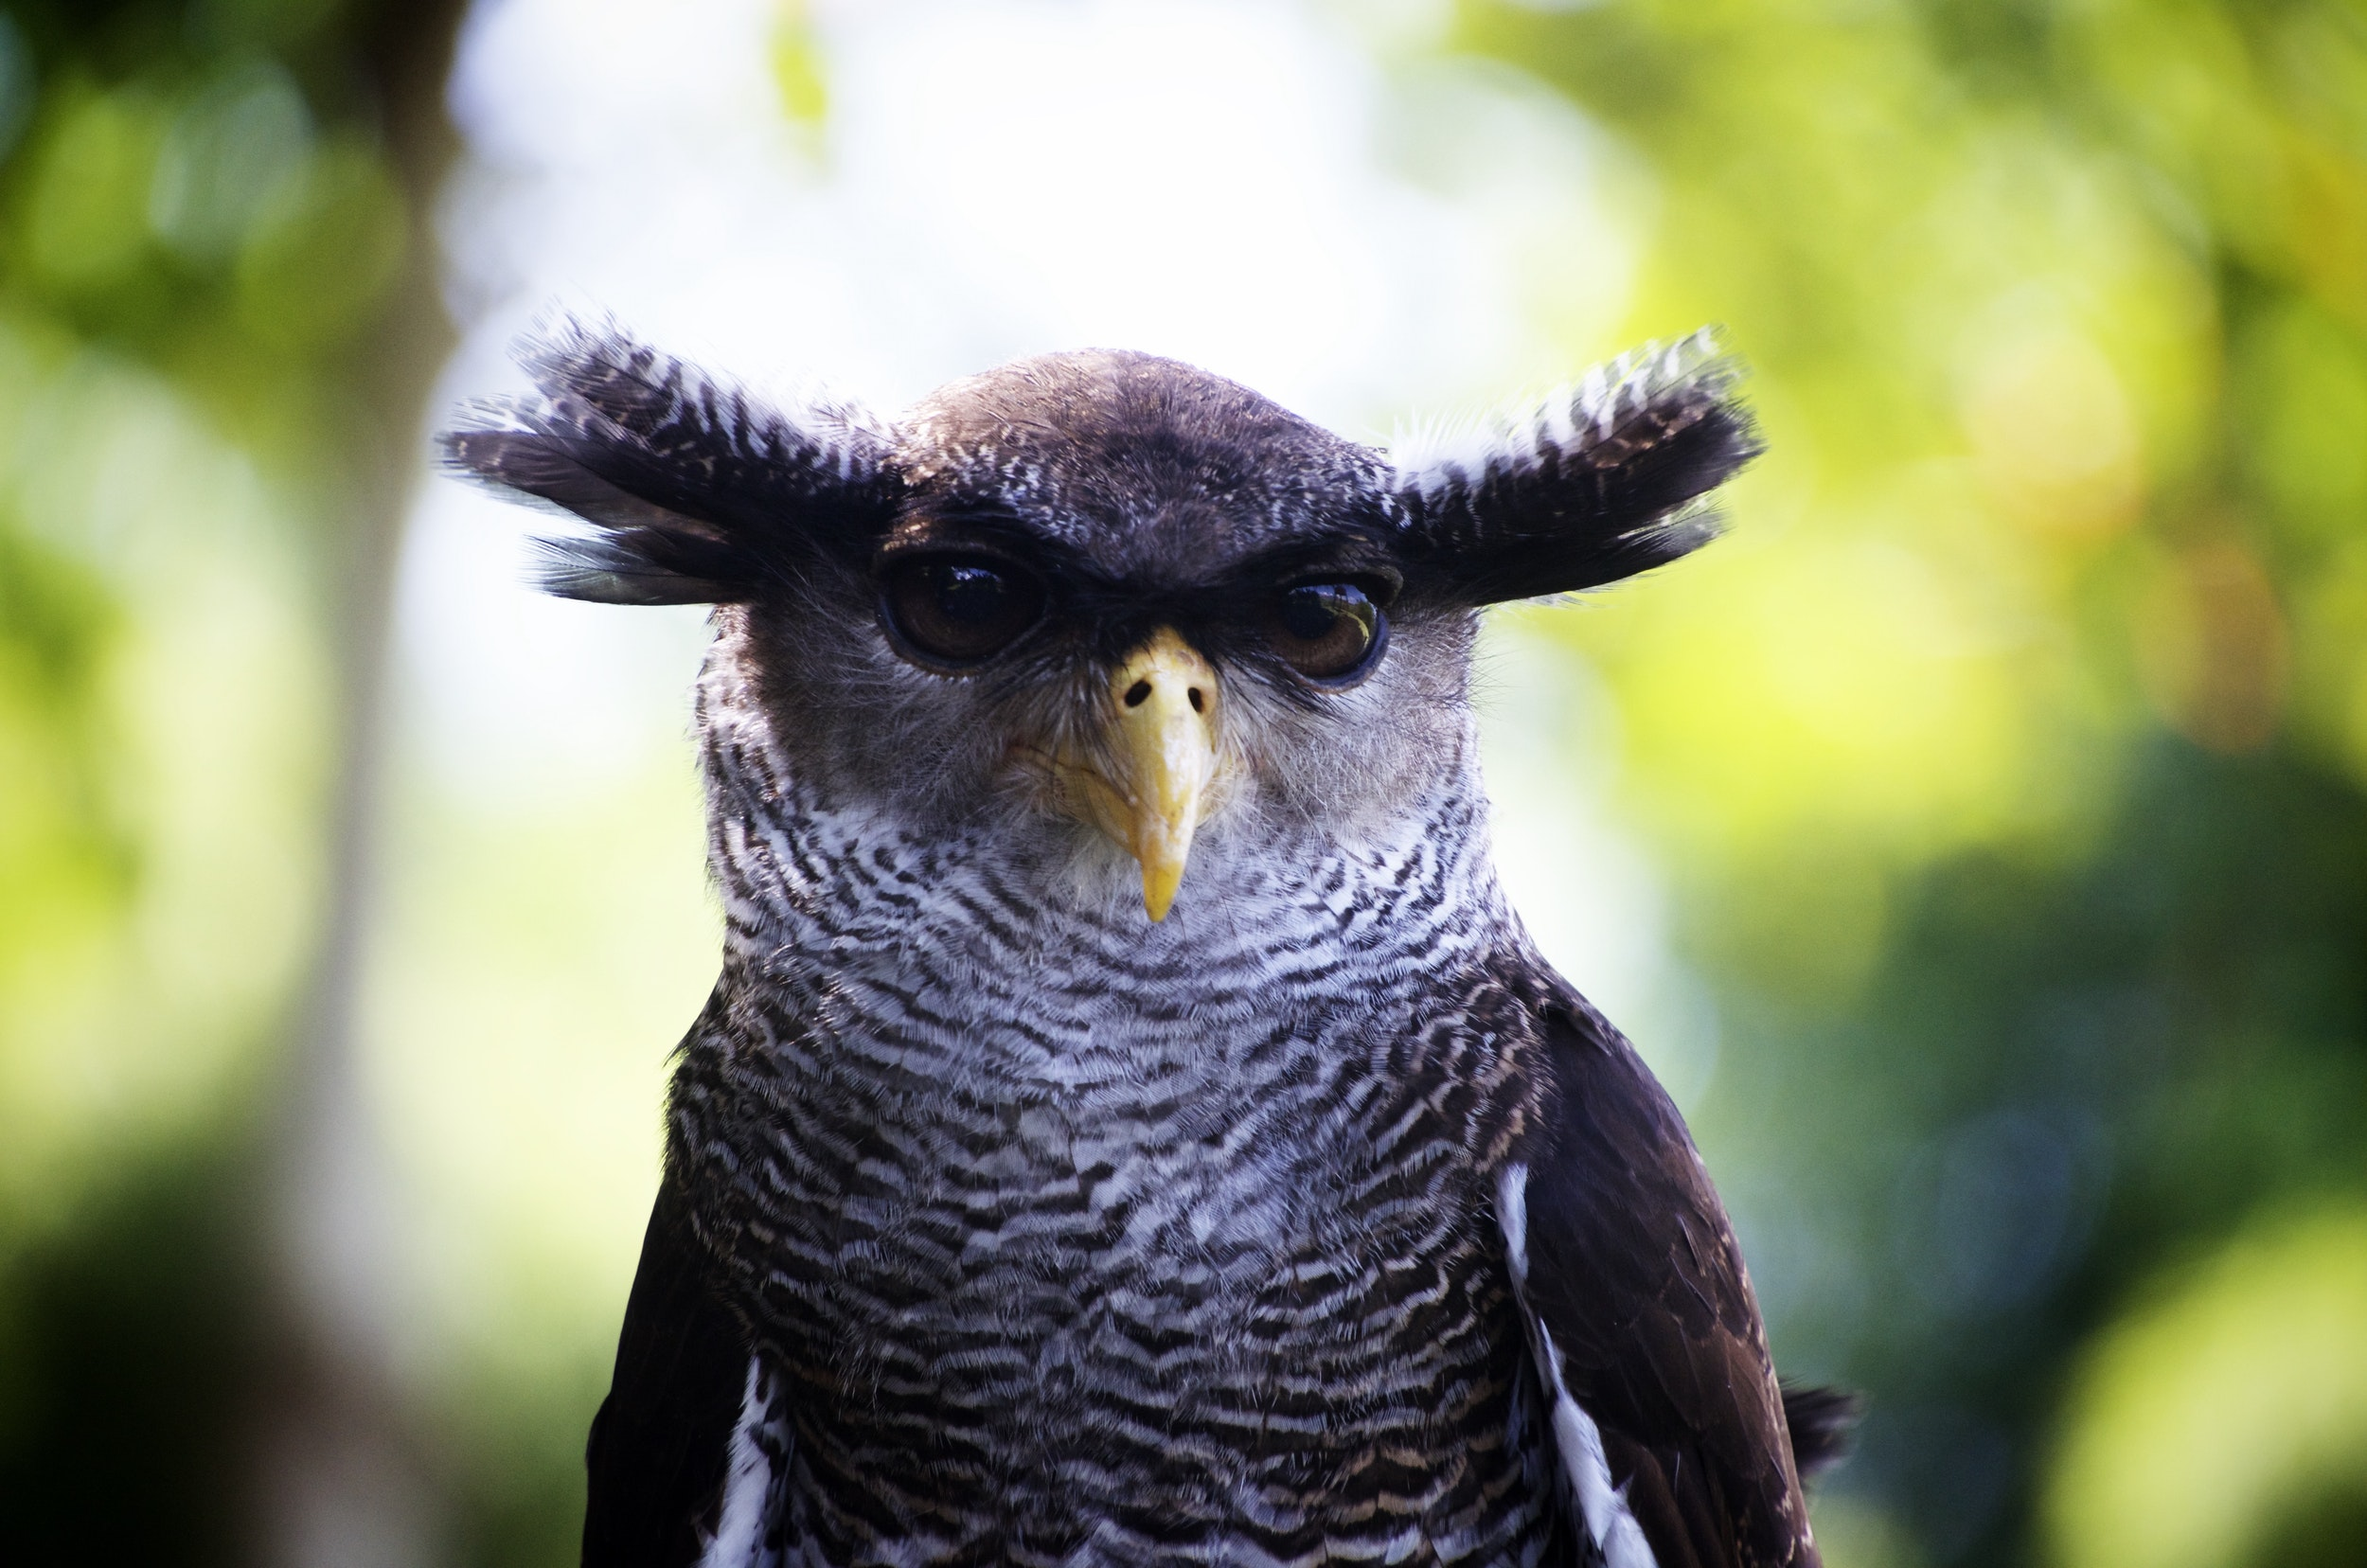 owl-close-up-bird-head (1).jpg